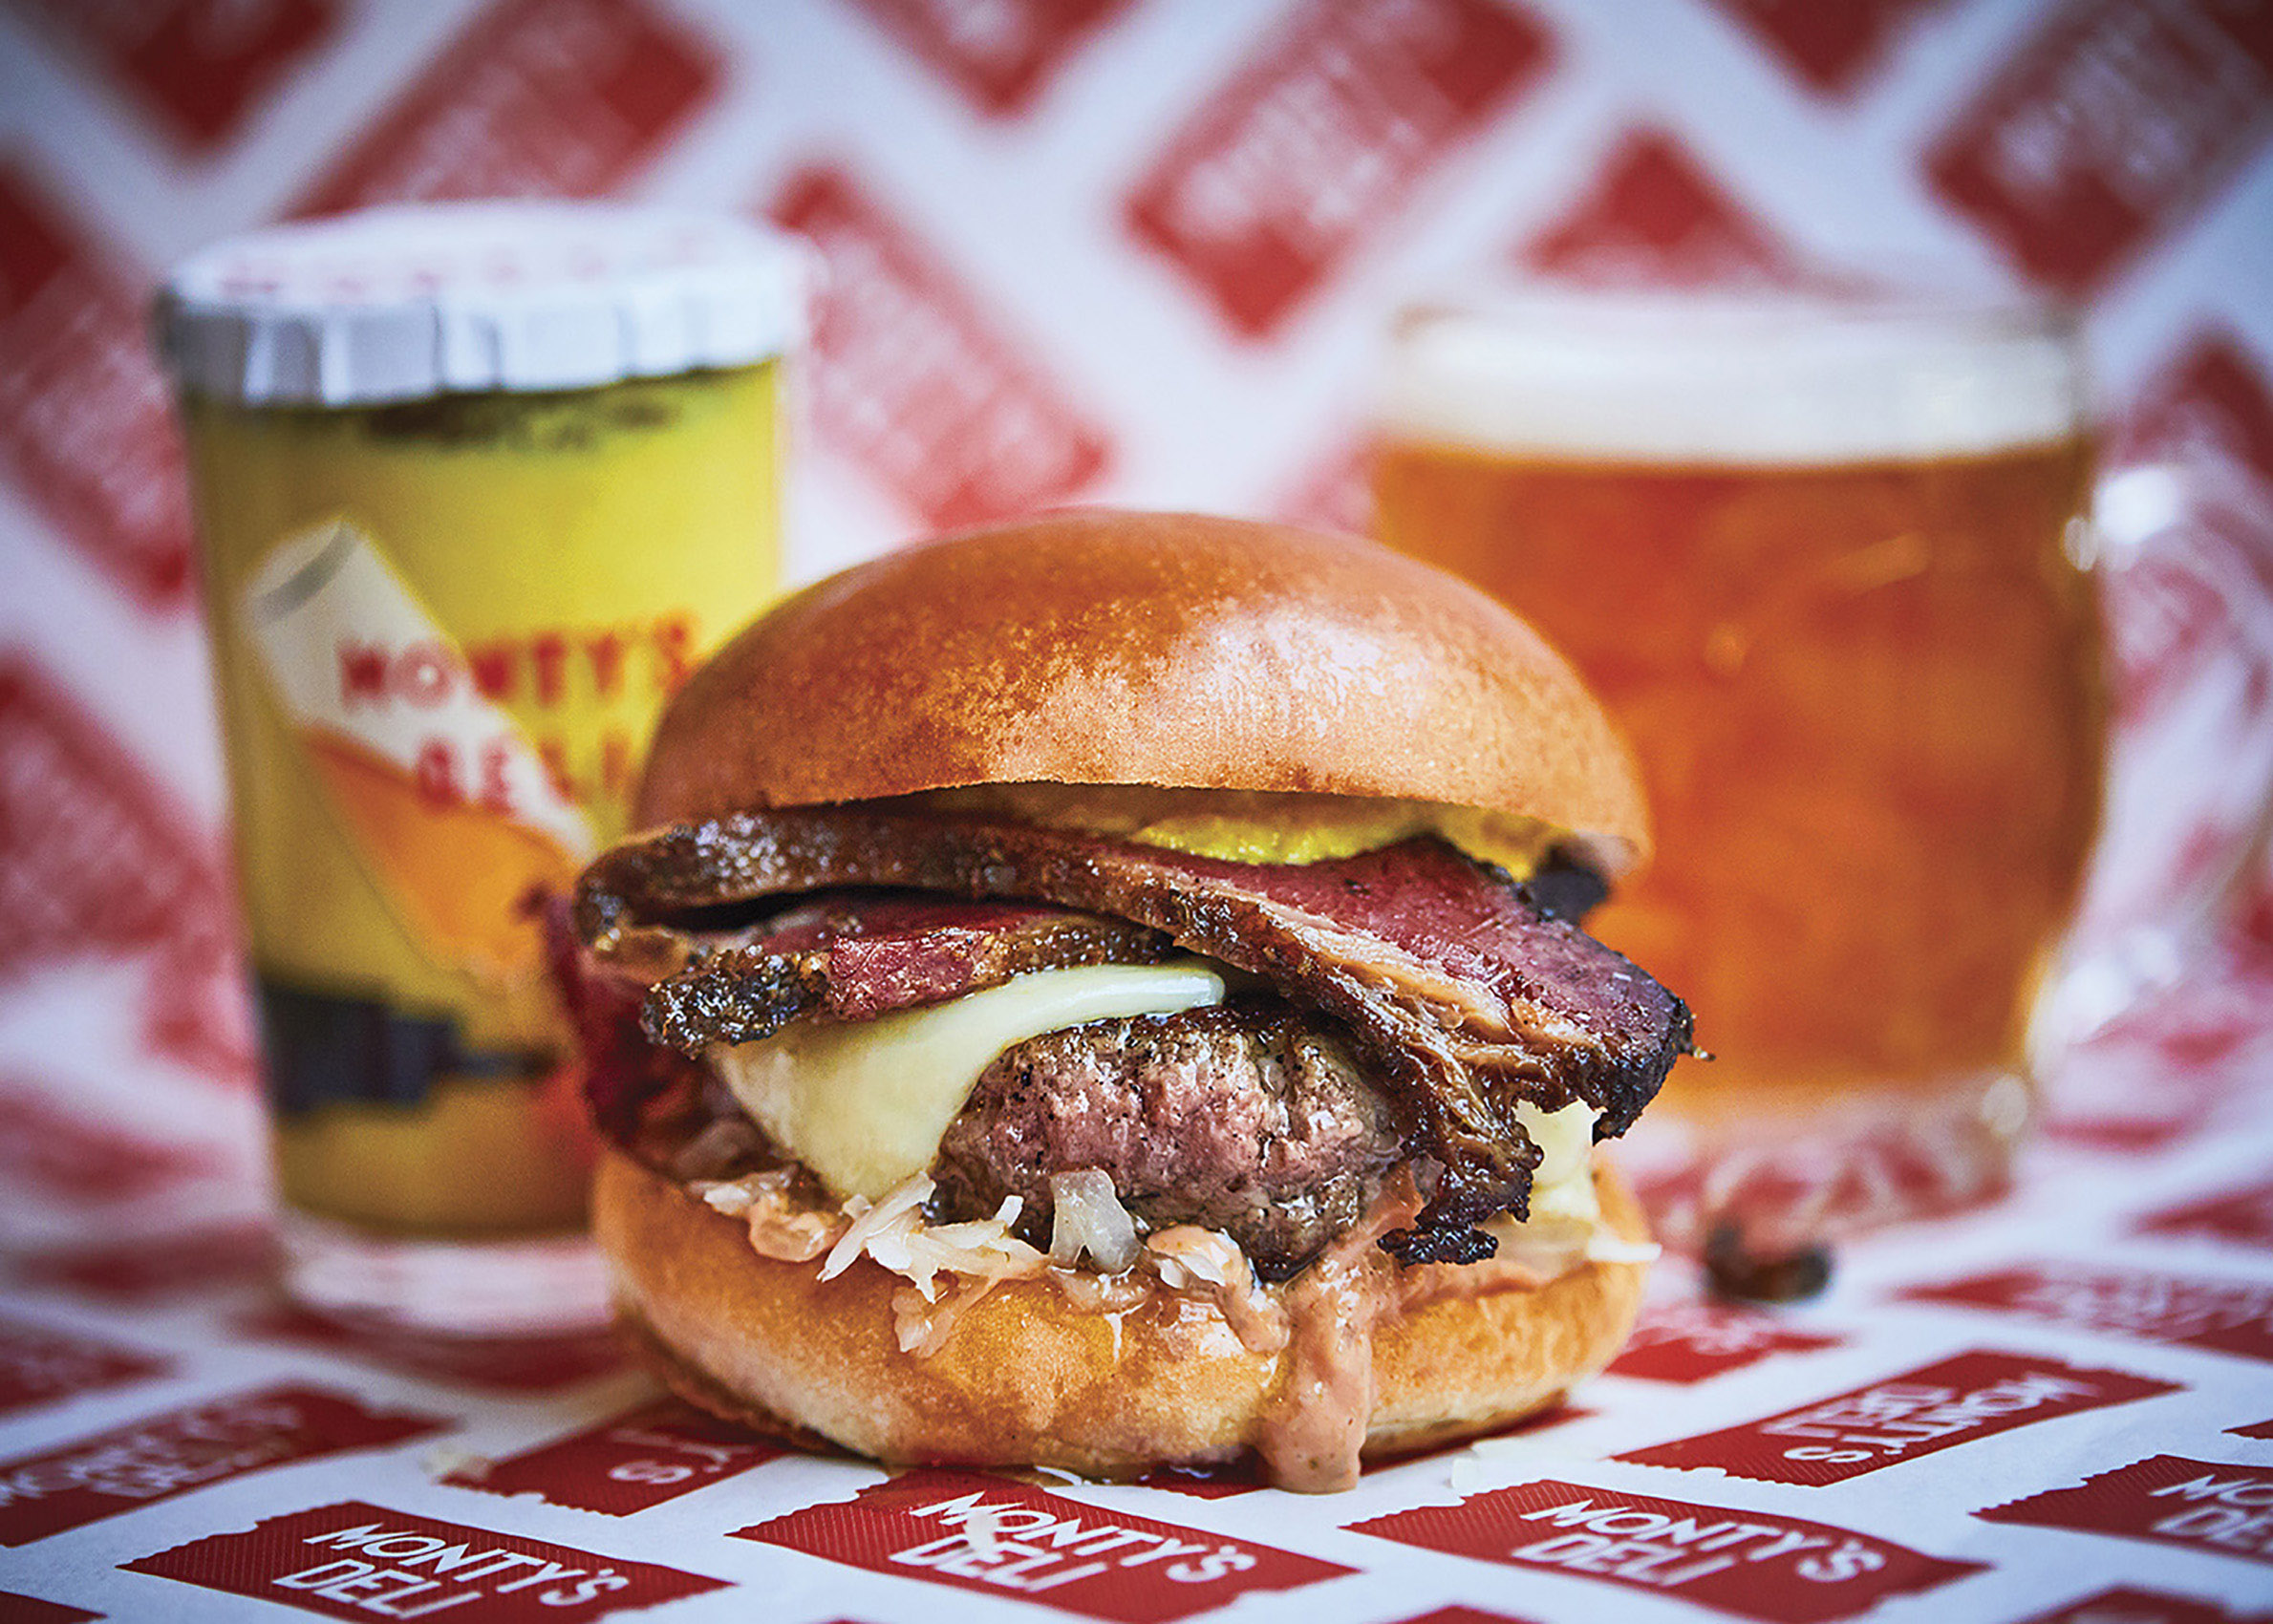 SteveRyan_Photographer_HonestBurgers_Burger_37